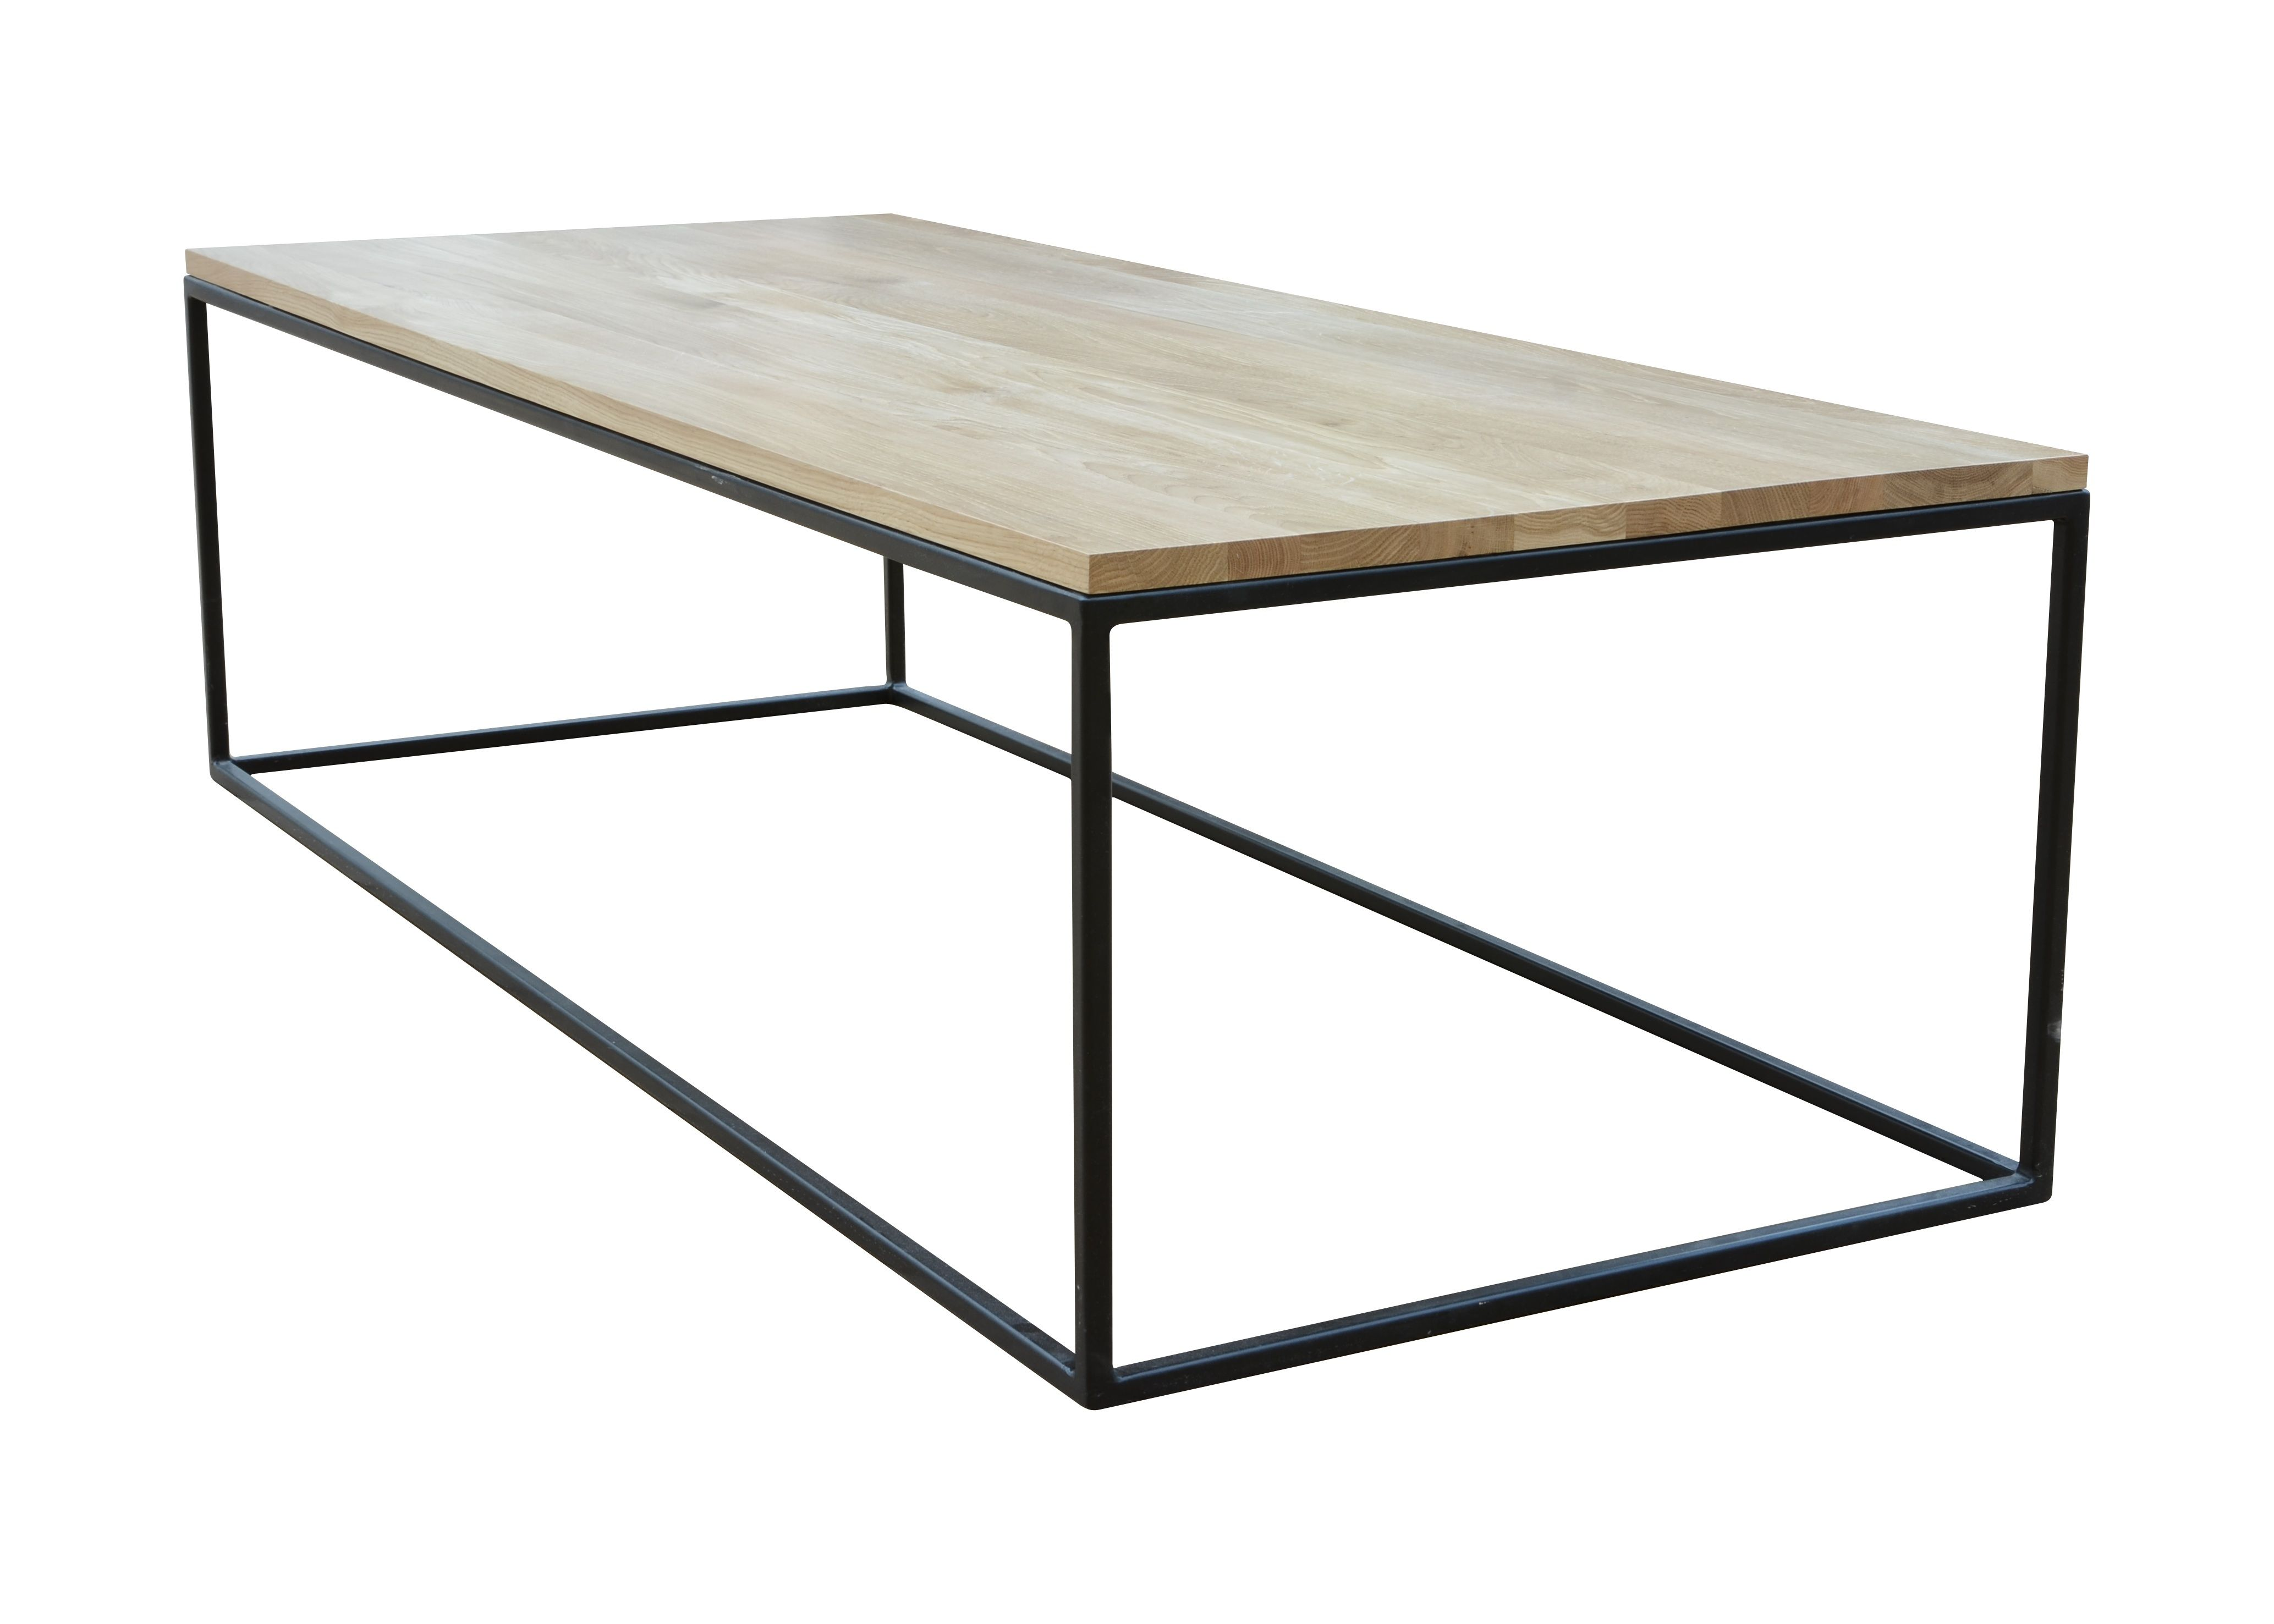 Coffee Table Comes With Oak Or Glass Top Furniture Solid Wood Furniture Modern Furniture Designer Furniture Coffee Table Furniture Table [ 2953 x 4134 Pixel ]